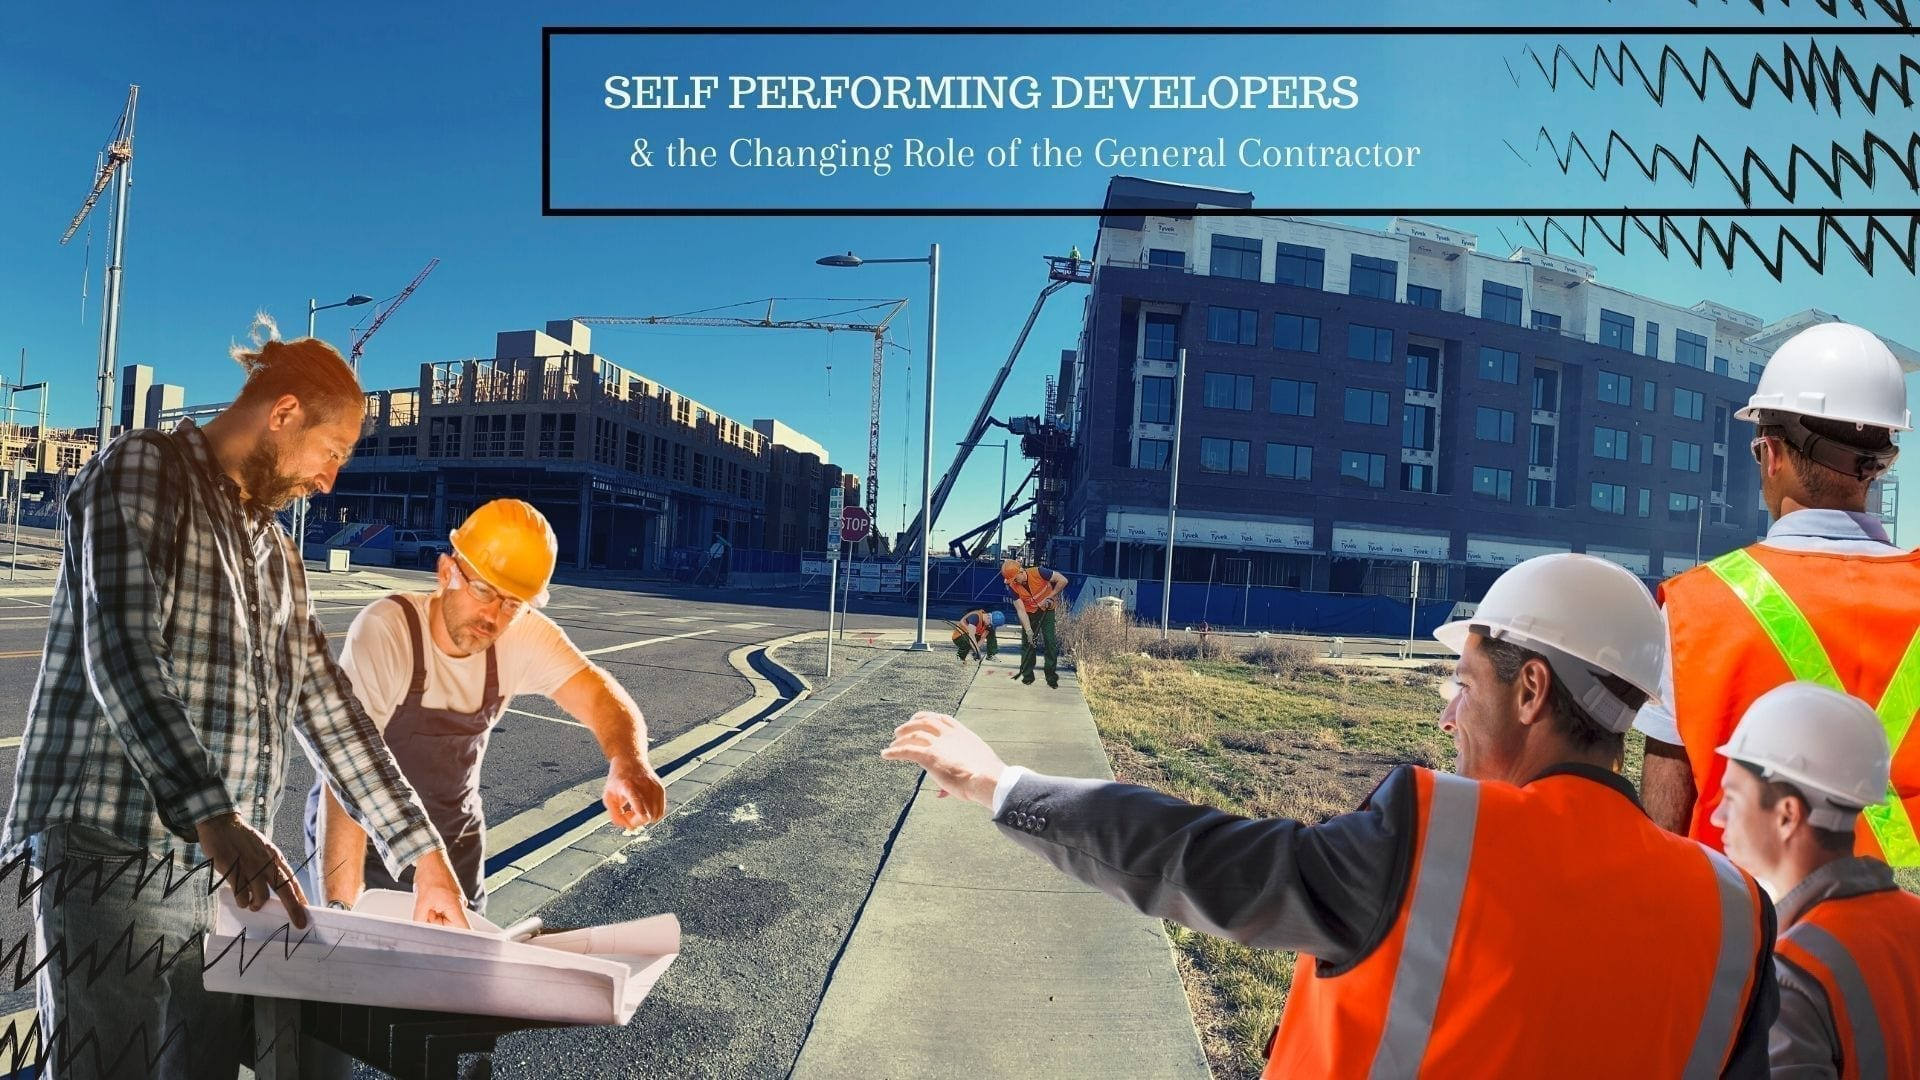 Self Performing Developers and the changing role of the general contractor